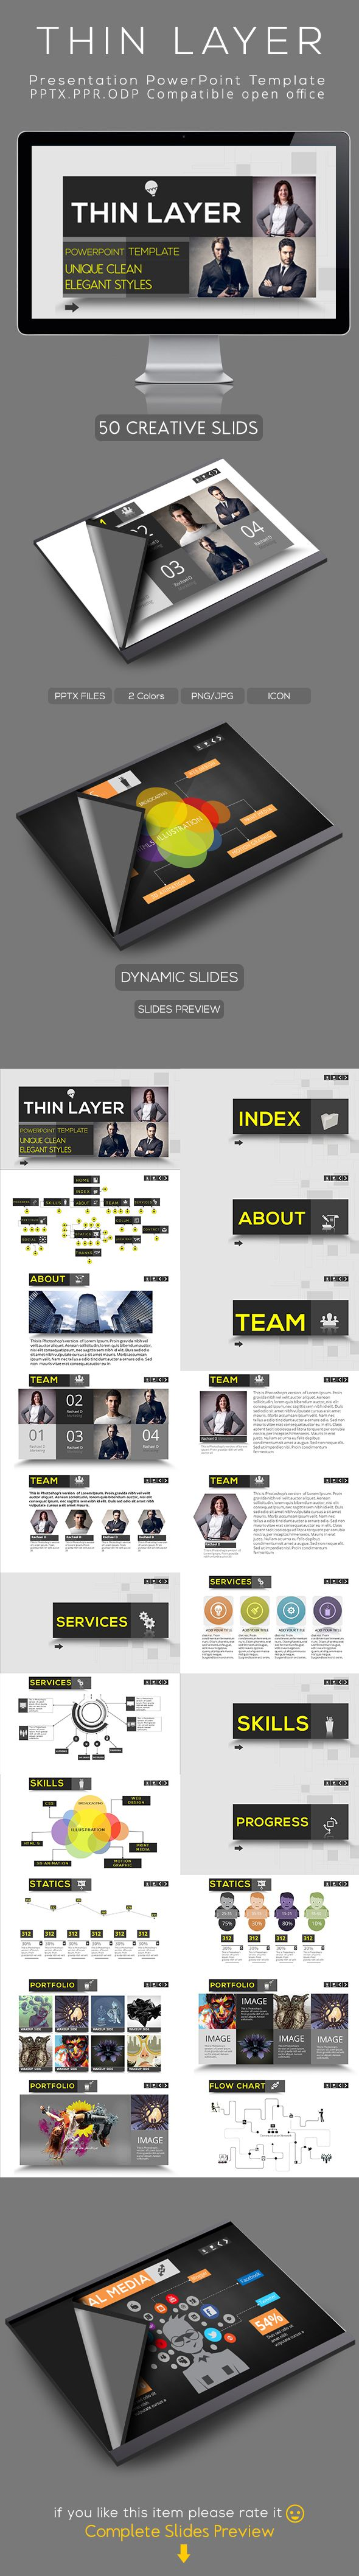 Thin Layer Powerpoint Presentation Template on Behance